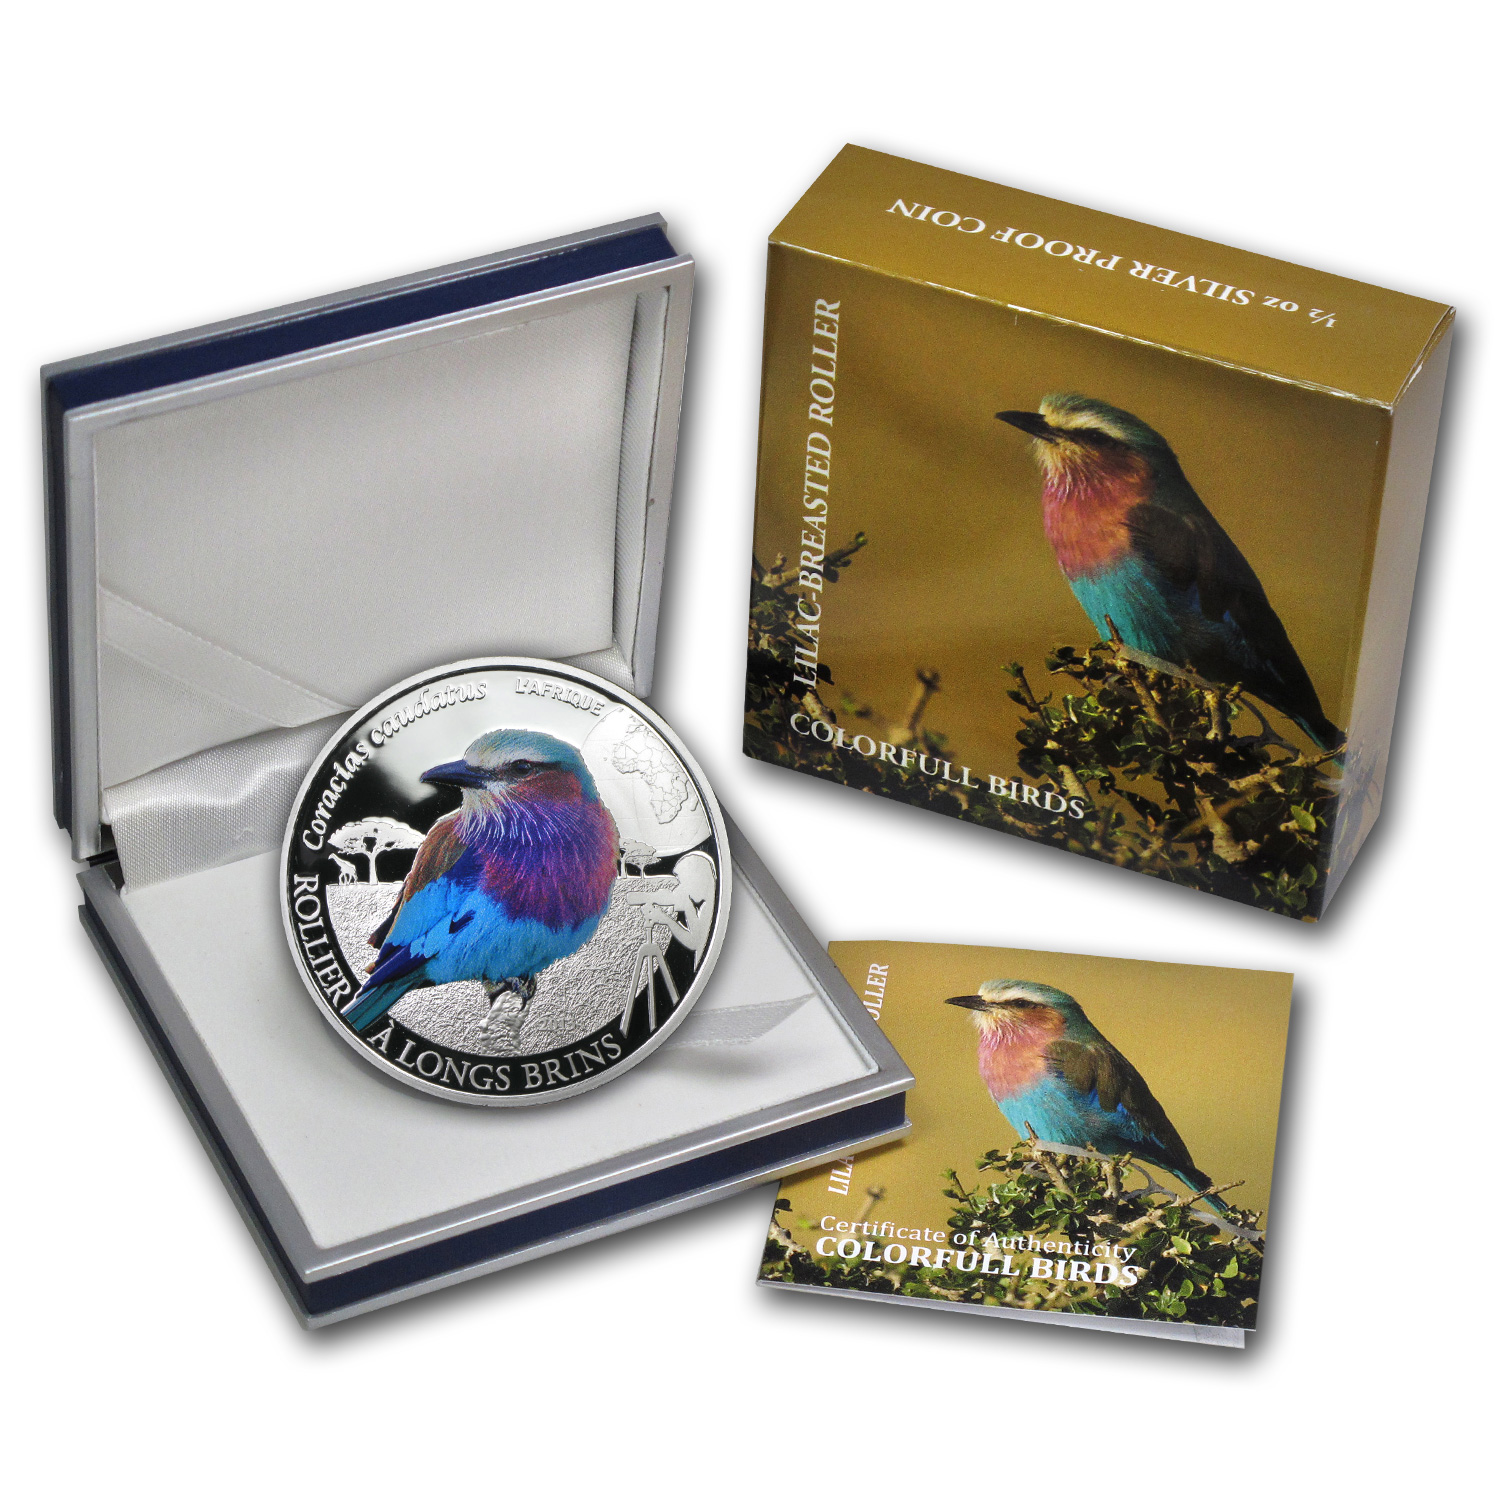 2013 Burkina 1/2 oz Silver Colorful Birds Lilac-Breasted Roller